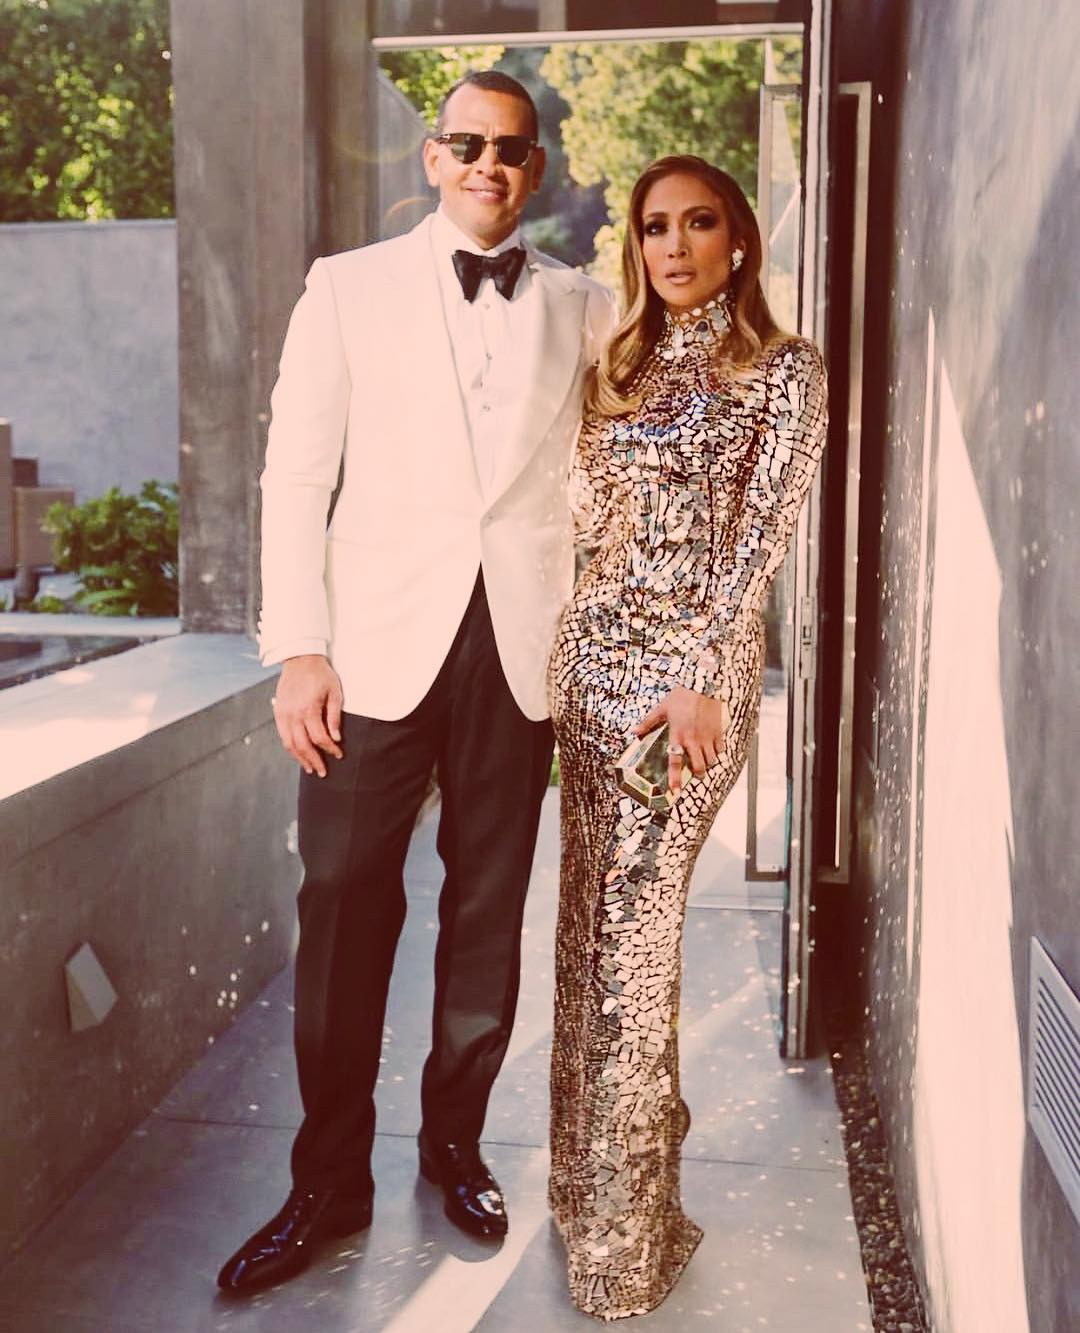 J.Lo And Alex Rodriguez engaged